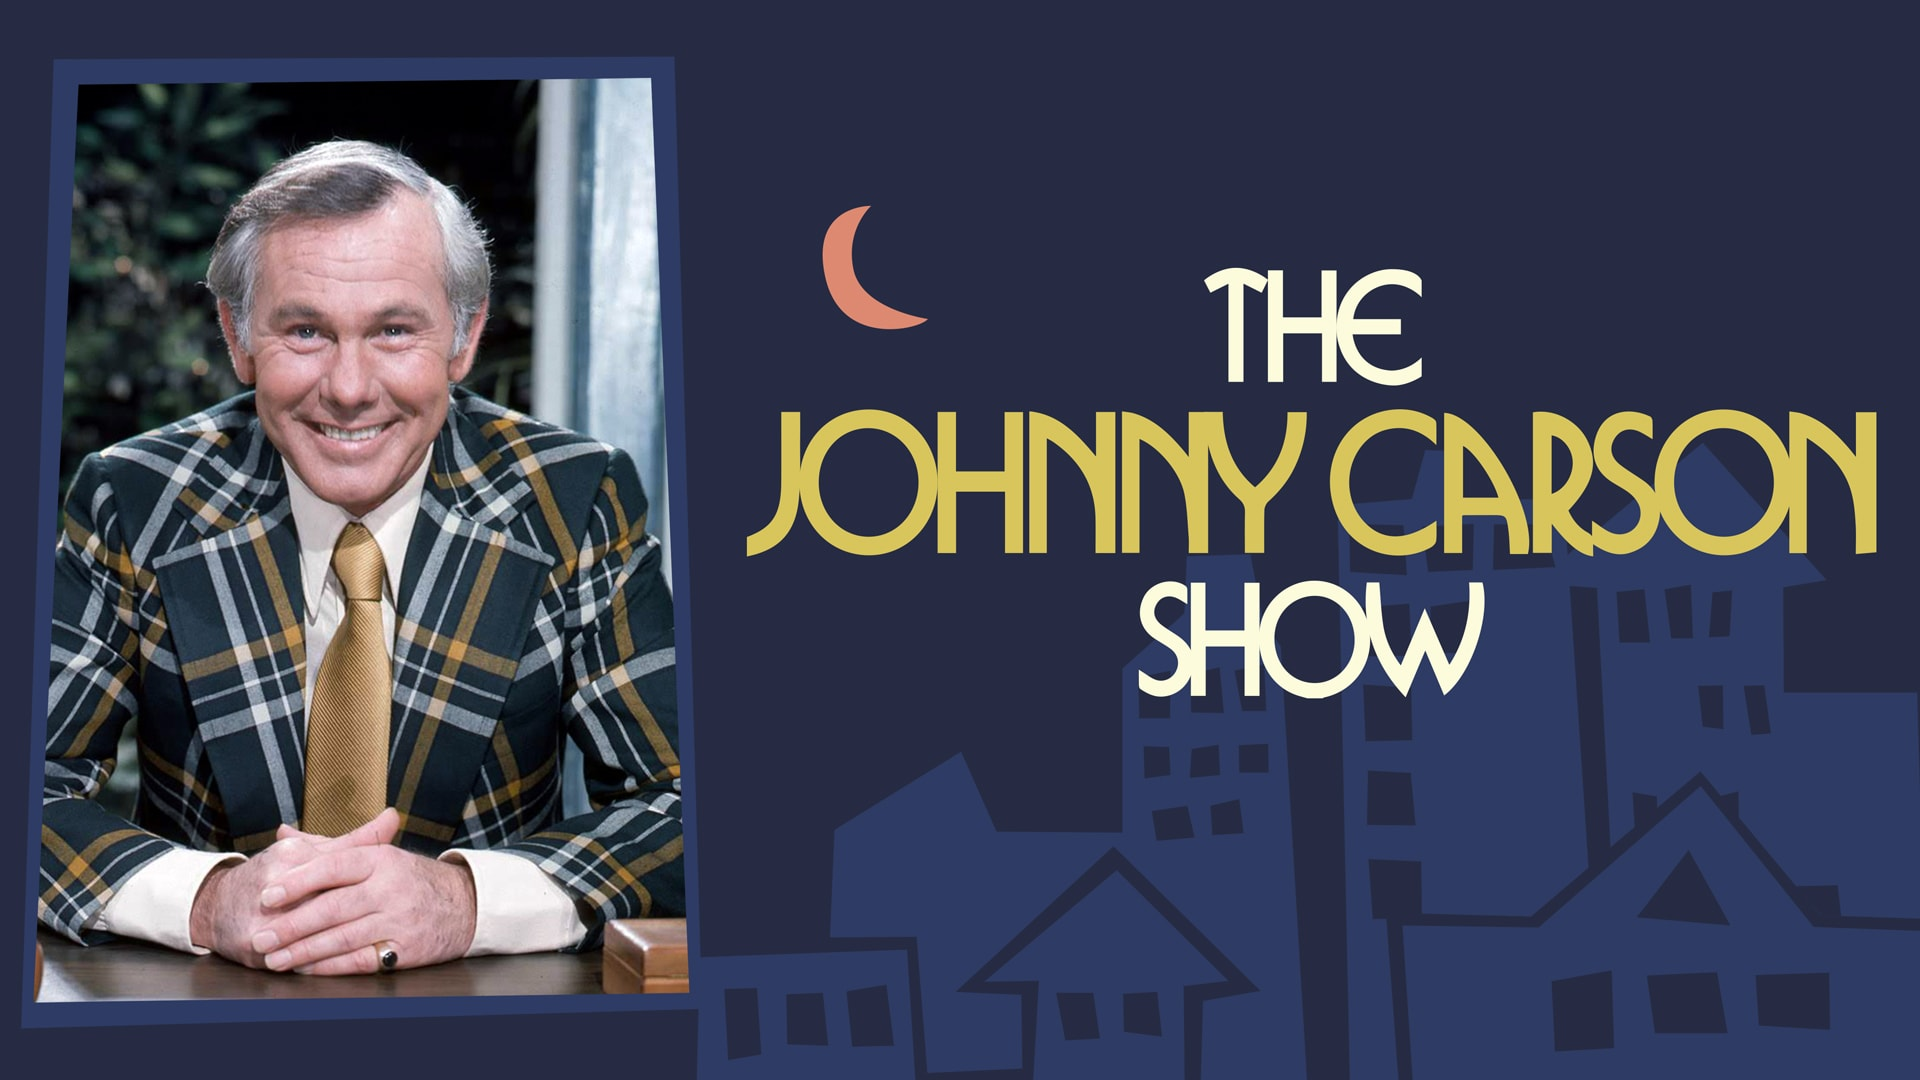 The Johnny Carson Show: Comic Legends Of The '60s - Joan Rivers (12/13/78)